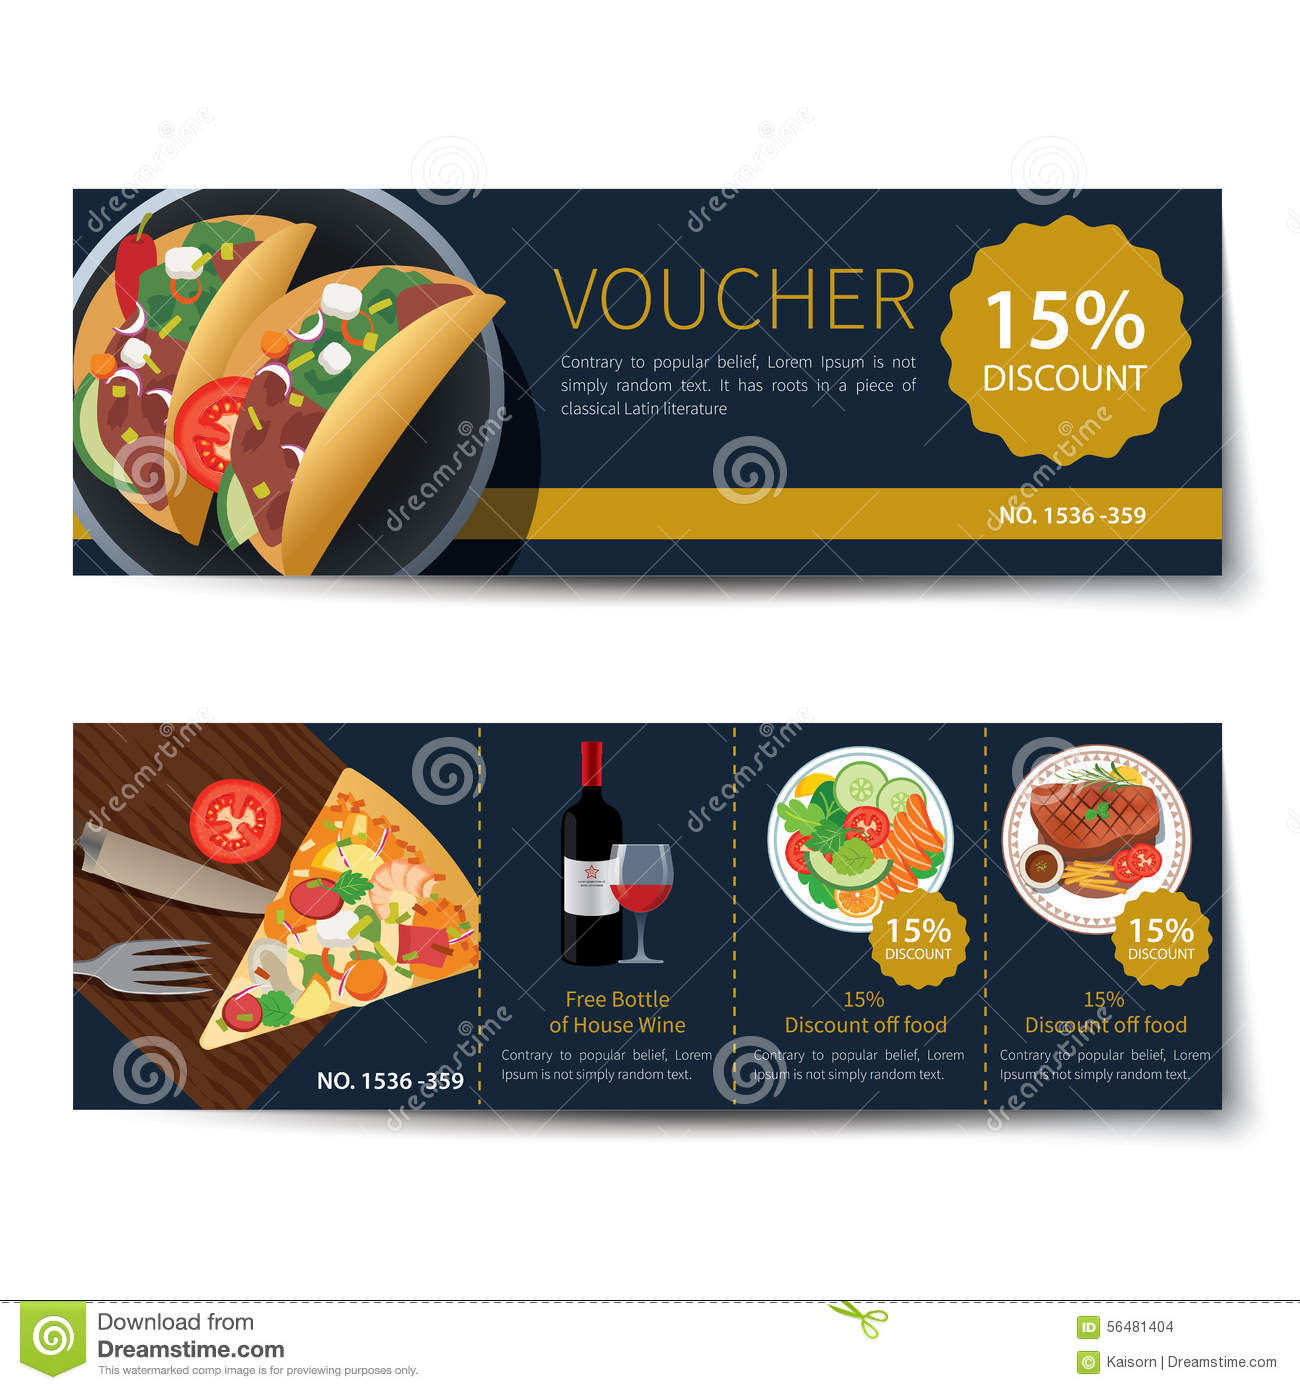 Superb Coupon Voucher Design Template U2013 30+ Free Word, U2026